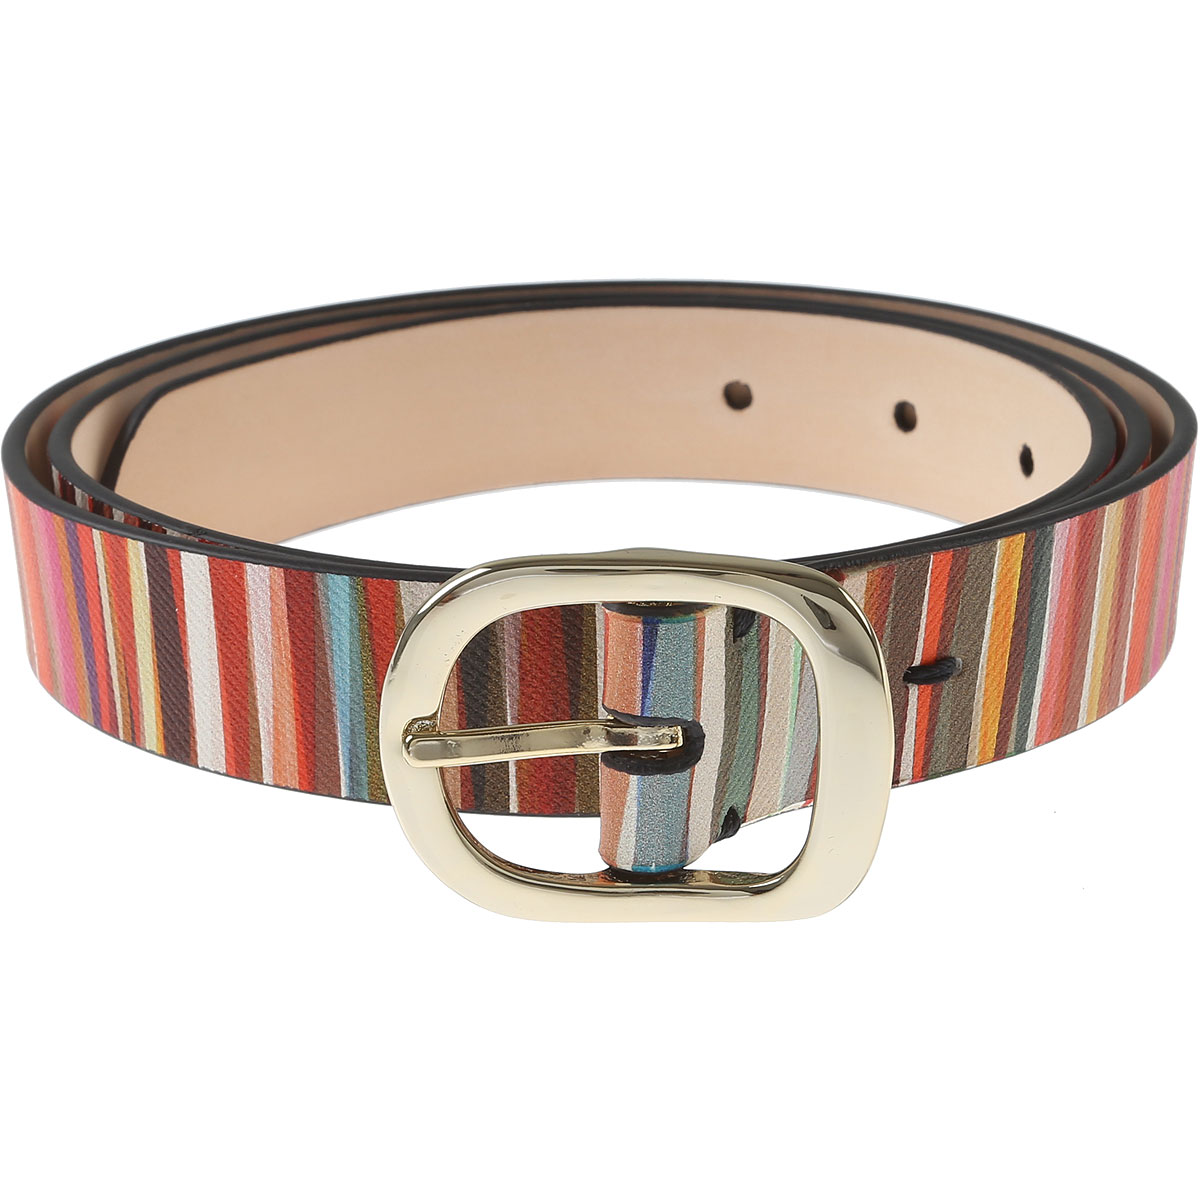 Paul Smith Womens Belts, Multicolor, Leather, 2017, 34 inches - 85 cm 38 inches - 95 cm